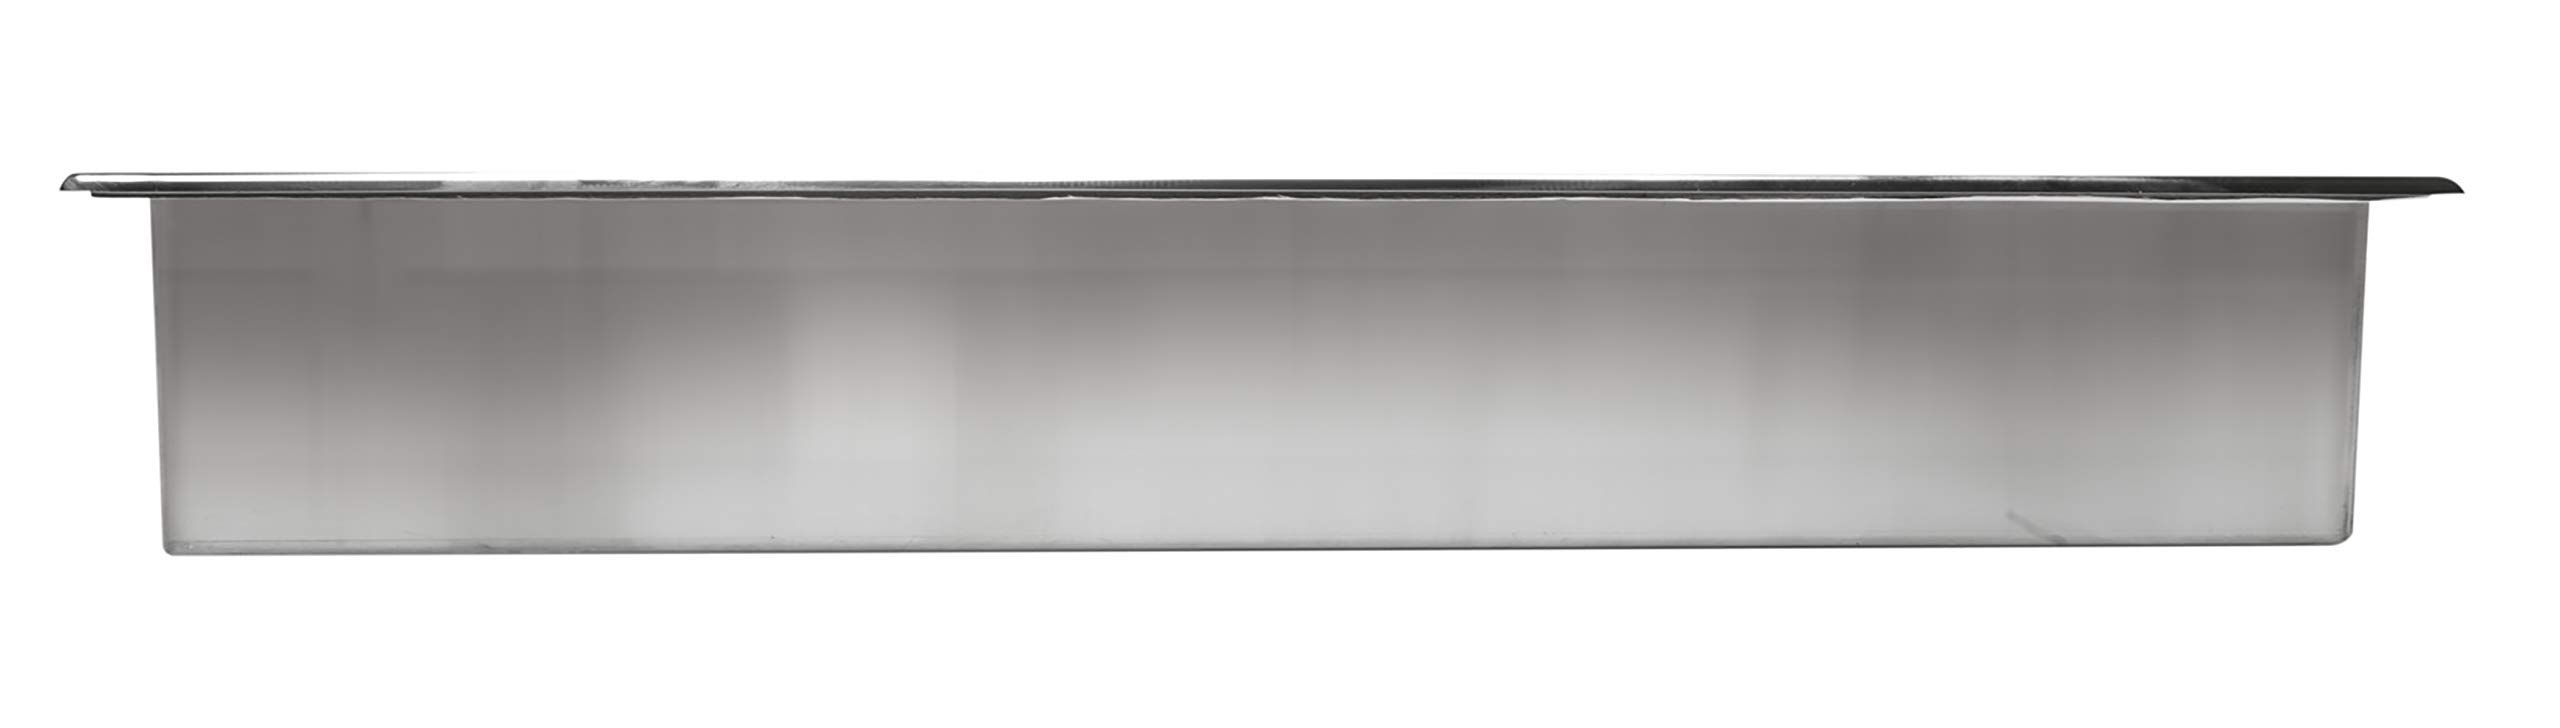 ALFI brand ABN2412-PSS Shower Niche, Polished Stainless Steel by Alfi (Image #4)